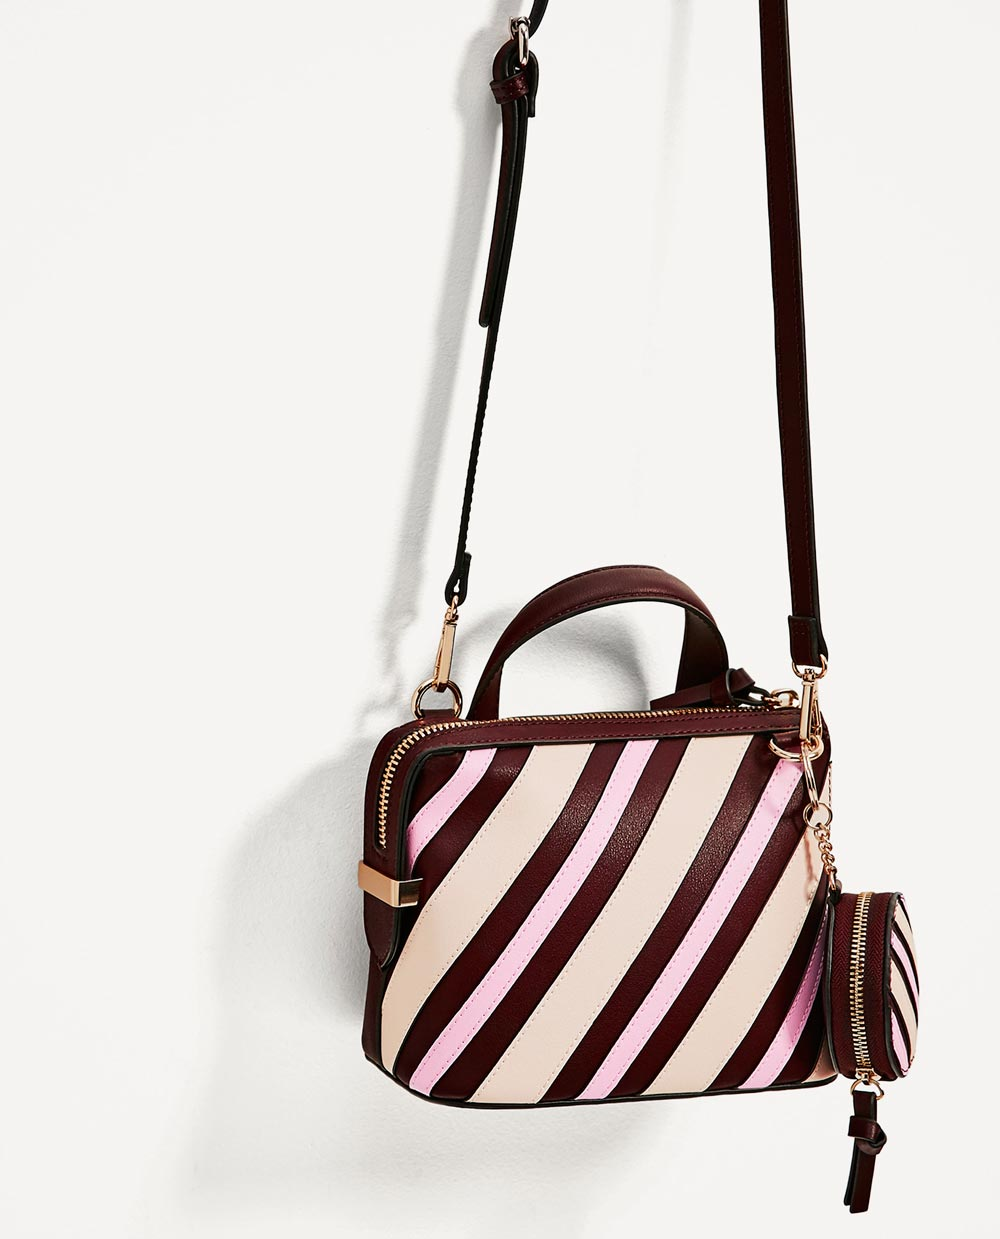 Zara Bags 2017 All The Models In Collection Our Best Style Double Strap Bag Striped Shoulder